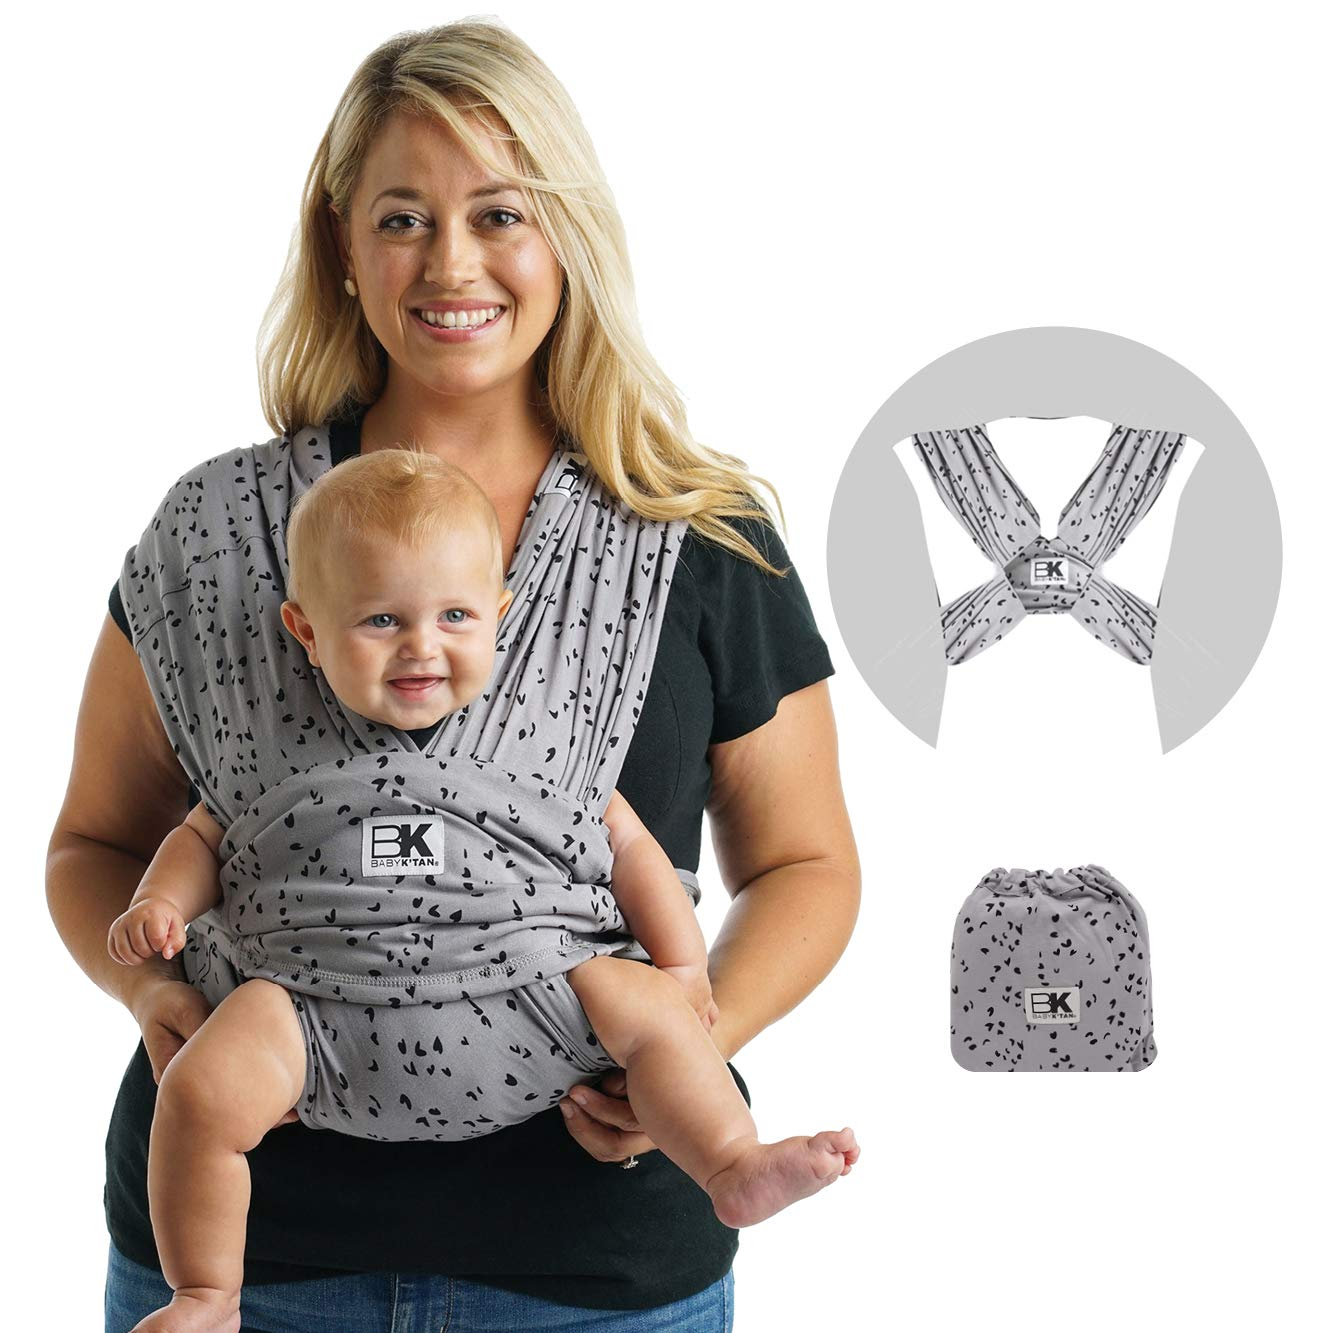 Baby K'tan Print Baby Wrap Carrier, Infant and Child Sling - Simple Wrap Holder for Babywearing - No Rings or Buckles- Carry Newborn up to 35 lbs, Sweetheart Grey, XS (W dress 2-4 / M jacket up to 36)